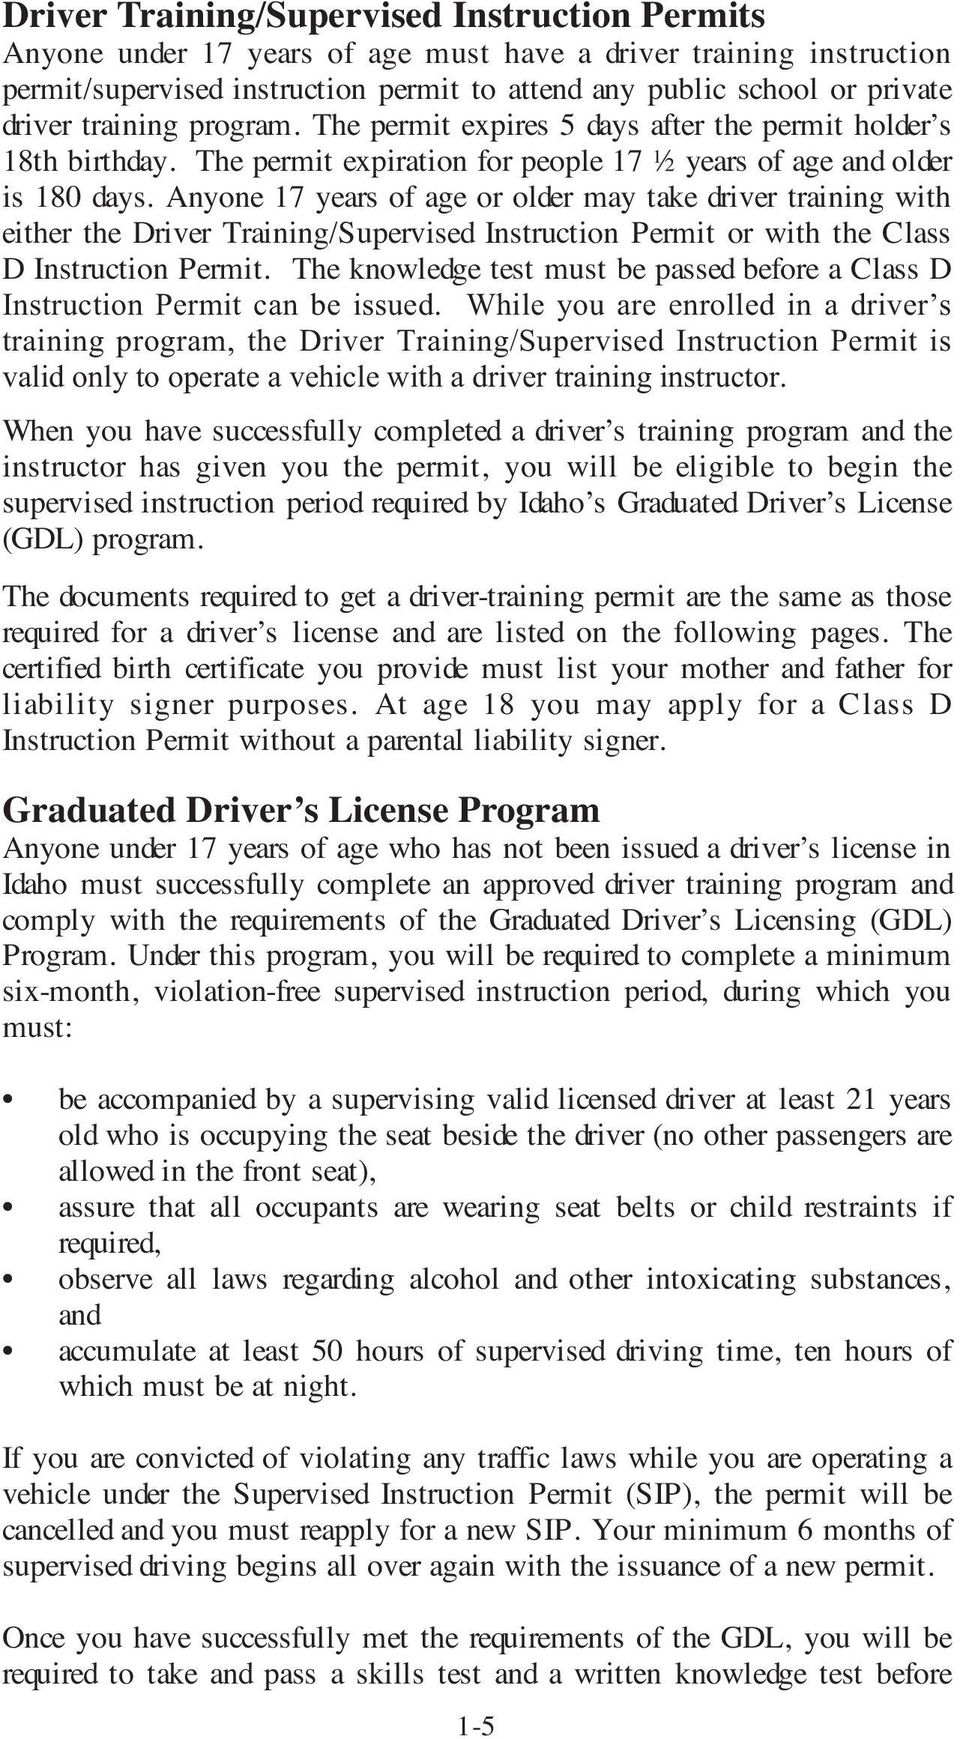 Anyone 17 years of age or older may take driver training with either the Driver Training/Supervised Instruction Permit or with the Class D Instruction Permit.